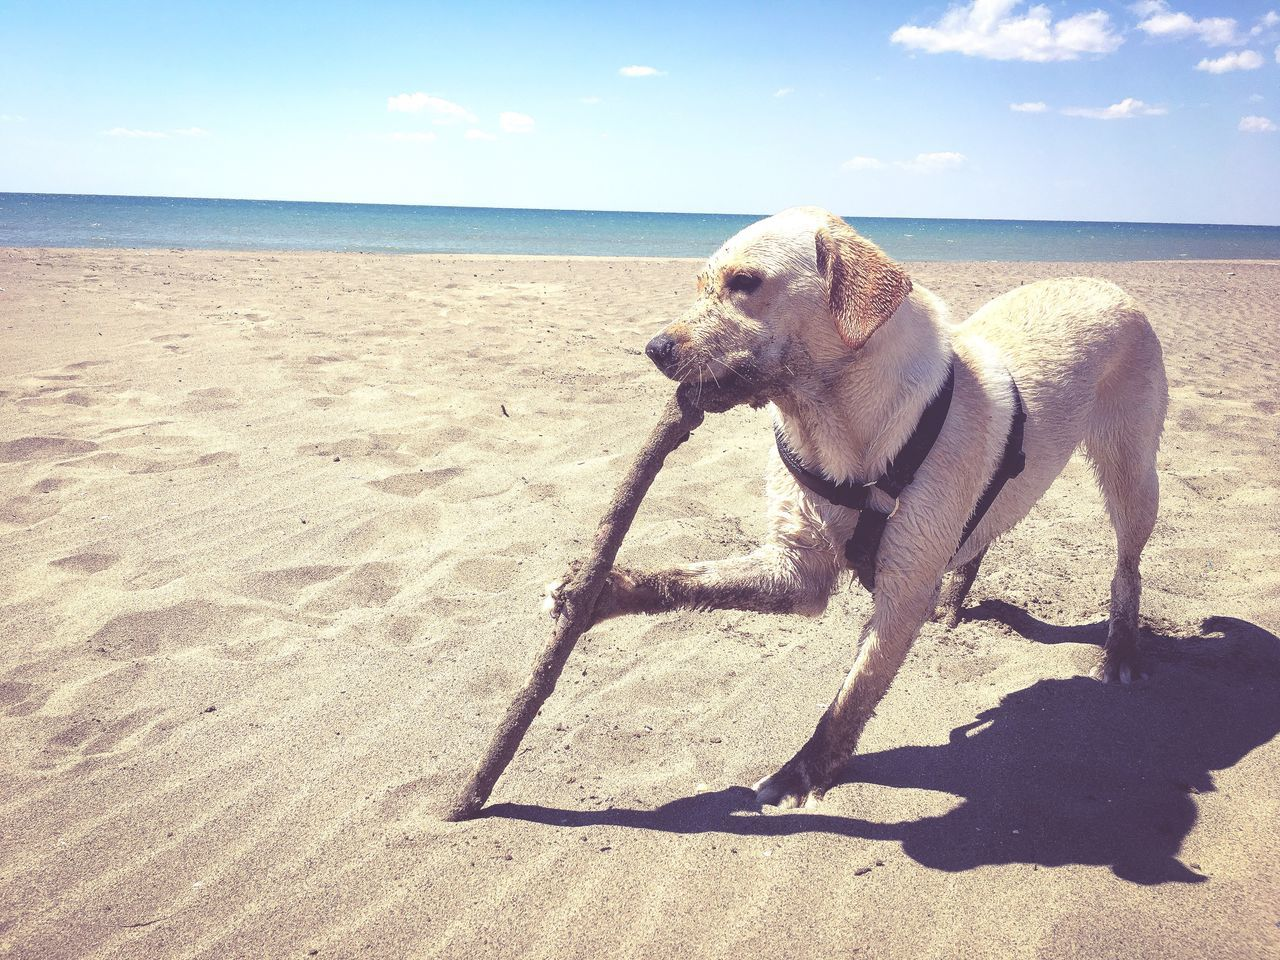 dog, sand, beach, one animal, pets, mammal, domestic animals, shadow, sunlight, sea, animal themes, sky, nature, outdoors, horizon over water, day, no people, standing, water, beauty in nature